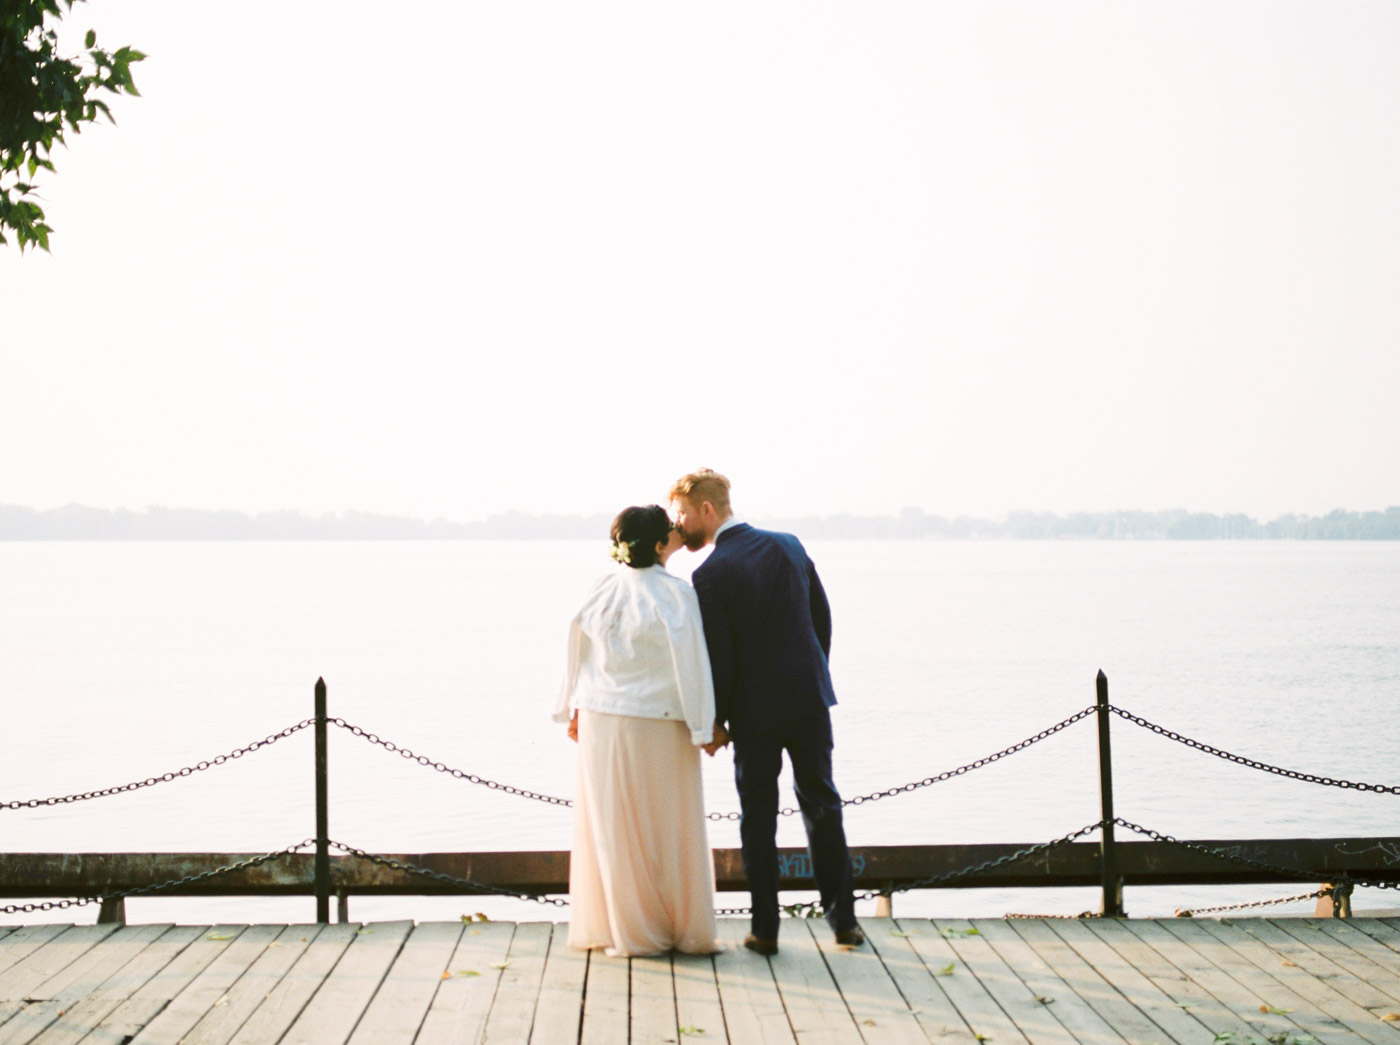 corynn_fowler_photography_toronto_wedding_boat_harbourfont-51.jpg